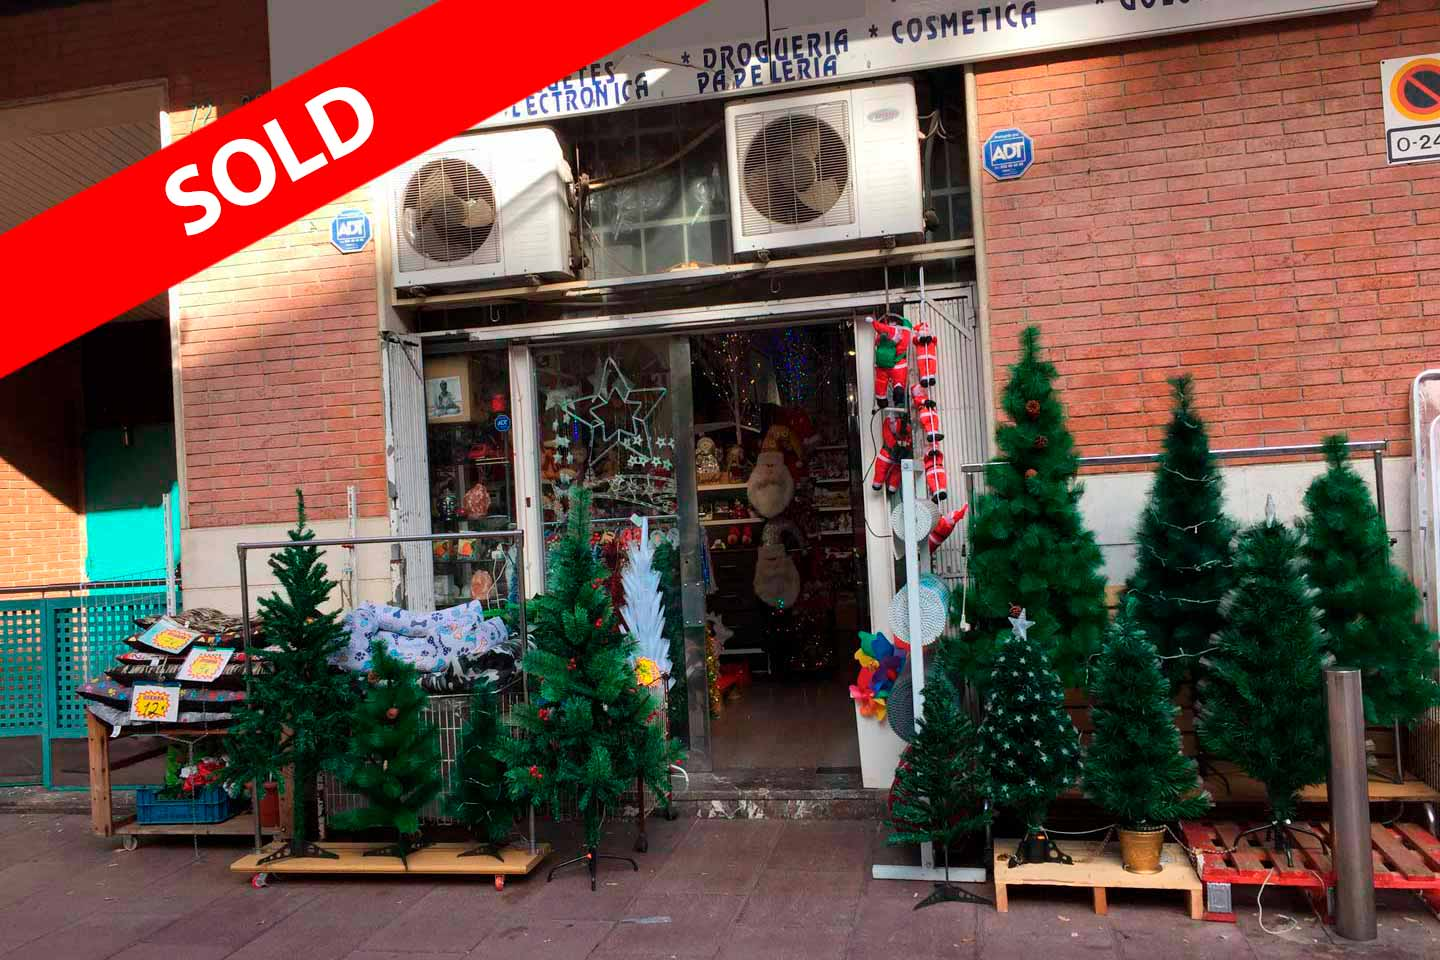 Commercial property for sale in Cartellà Street in Barcelona.